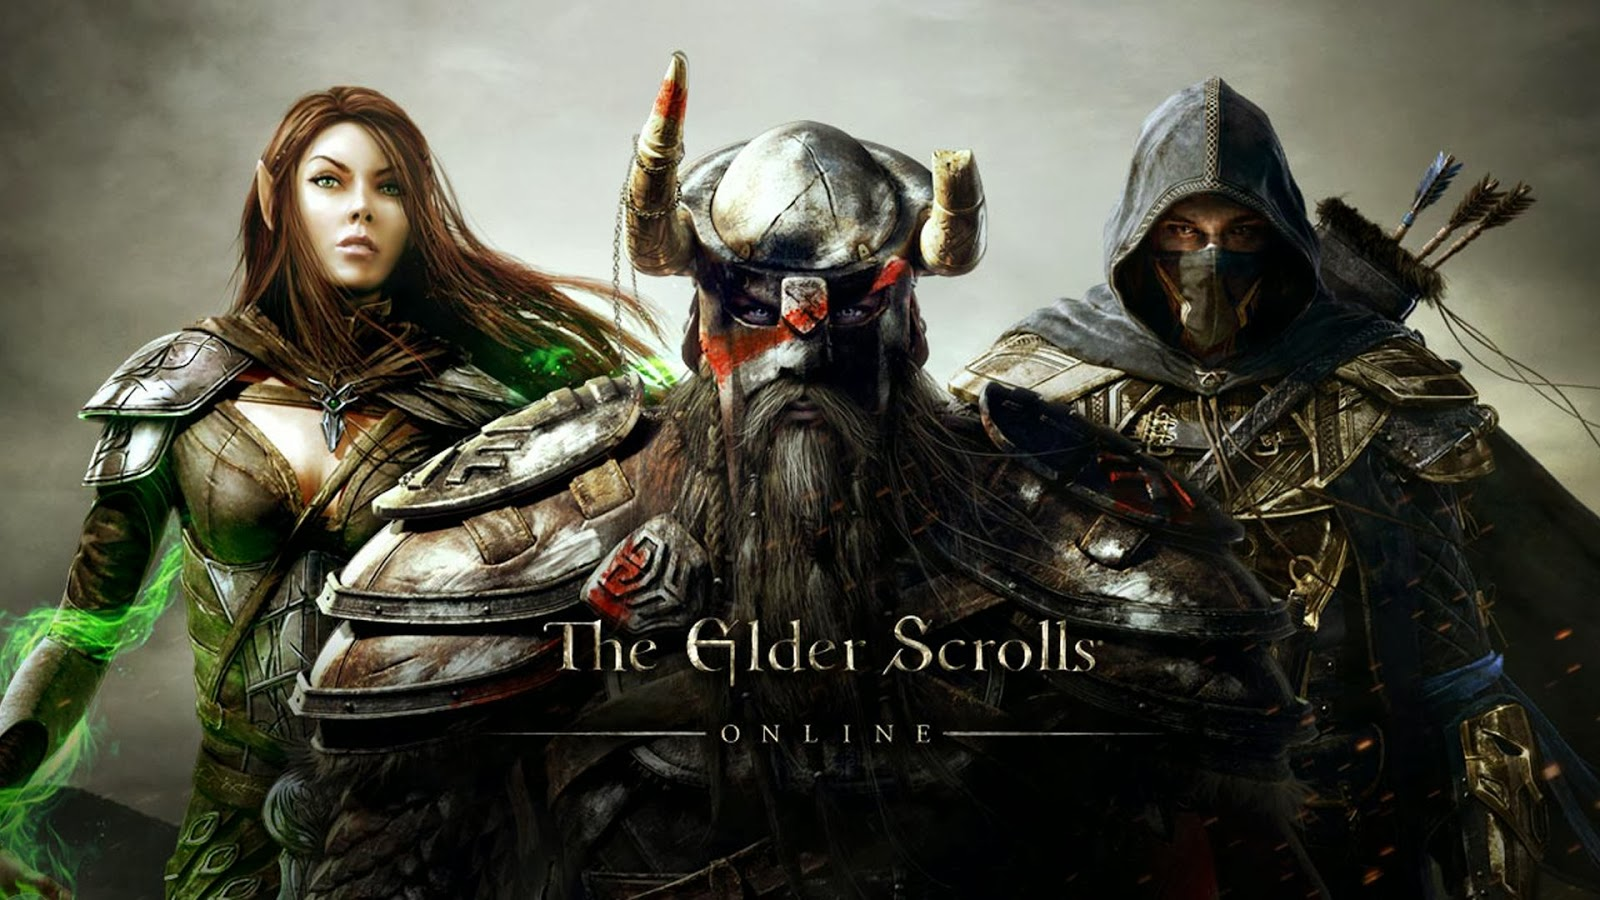 Spesifikasi PC Untuk The Elder Scrolls Online (ZeniMax Media Inc.)